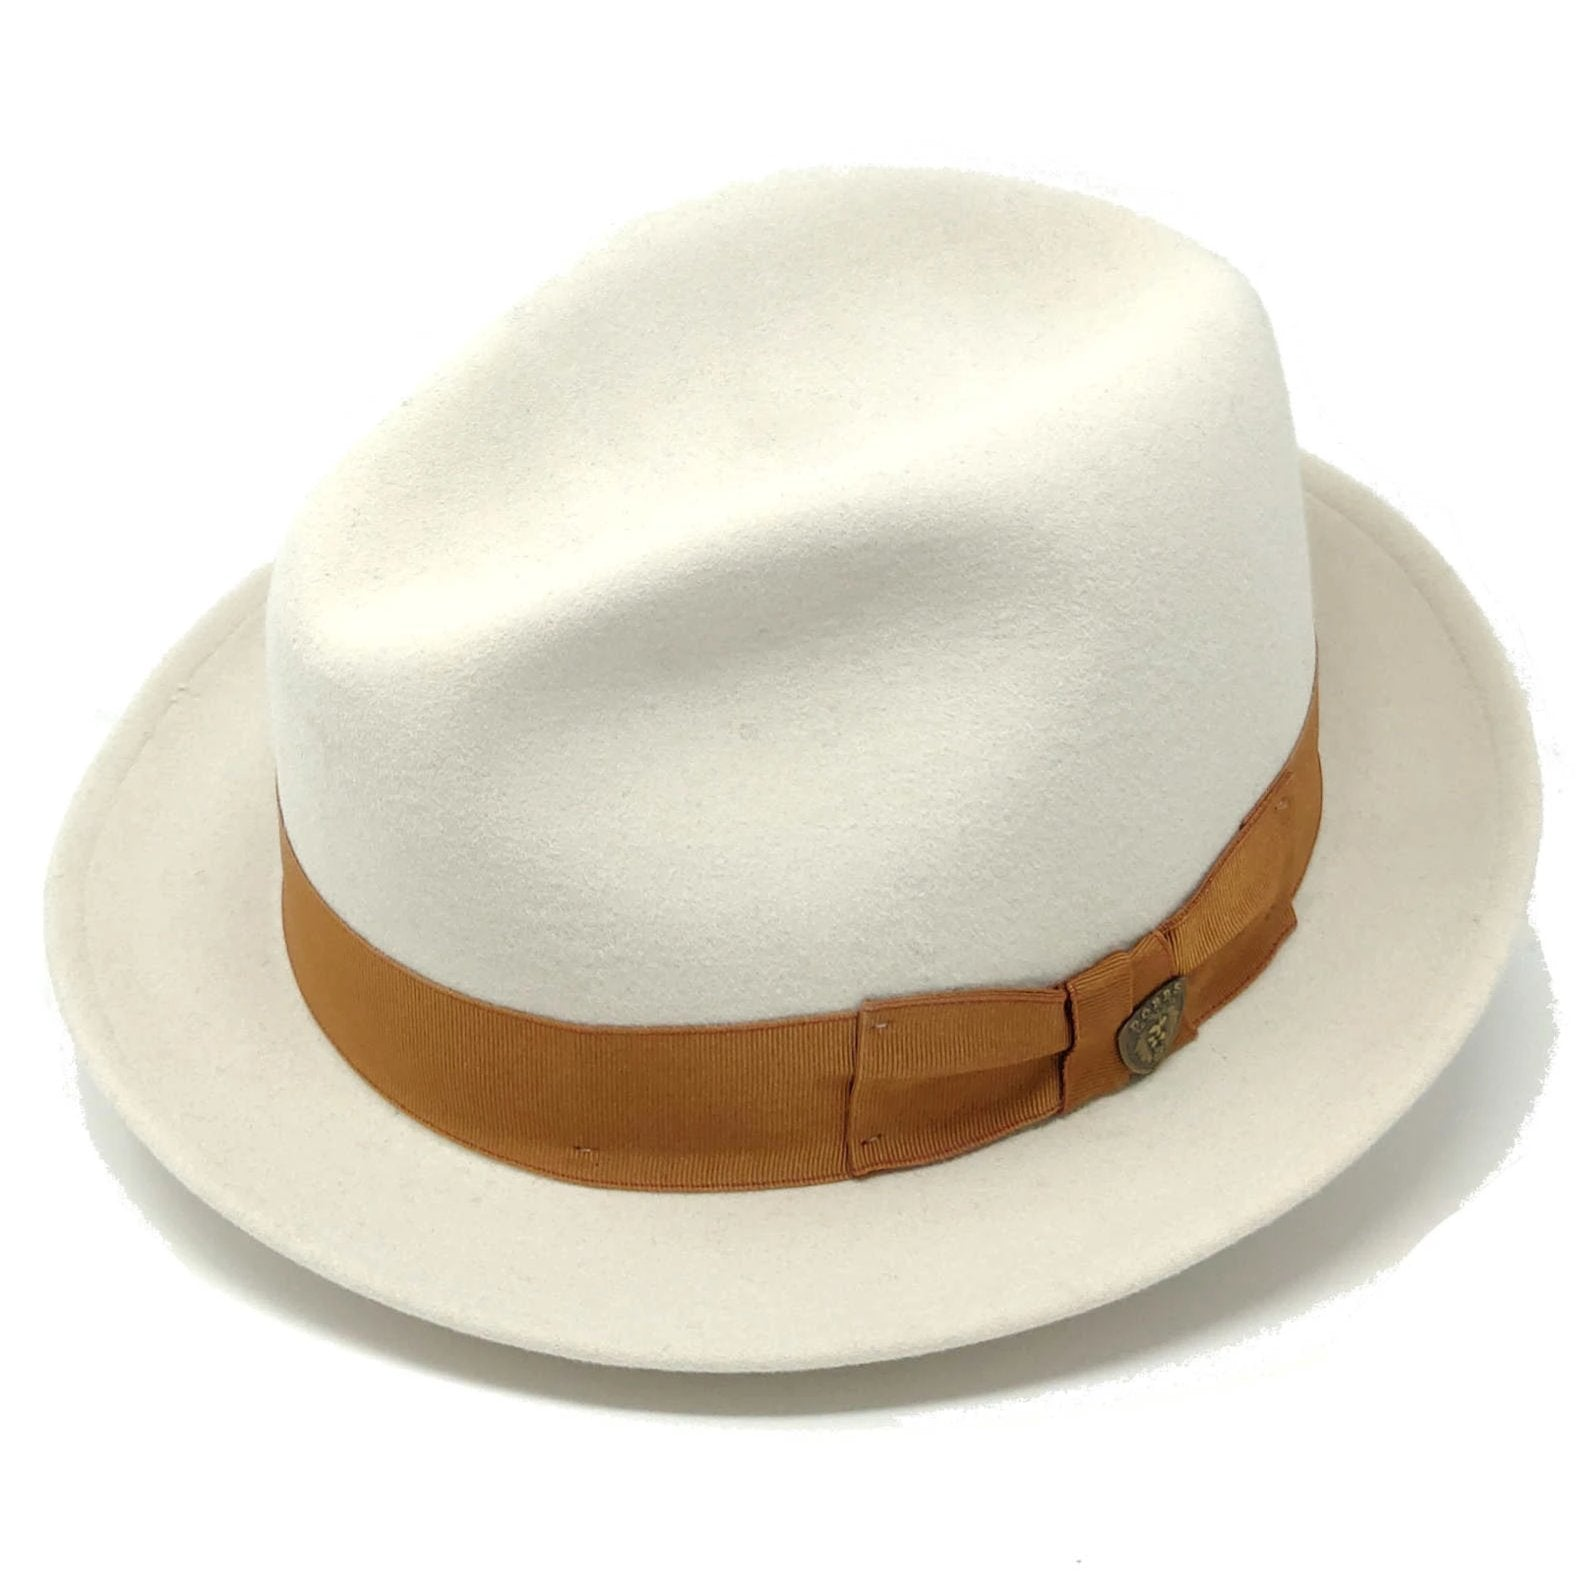 Dobbs Platypus Center Dent Wool Felt Fedora Hat - Dapperfam.com